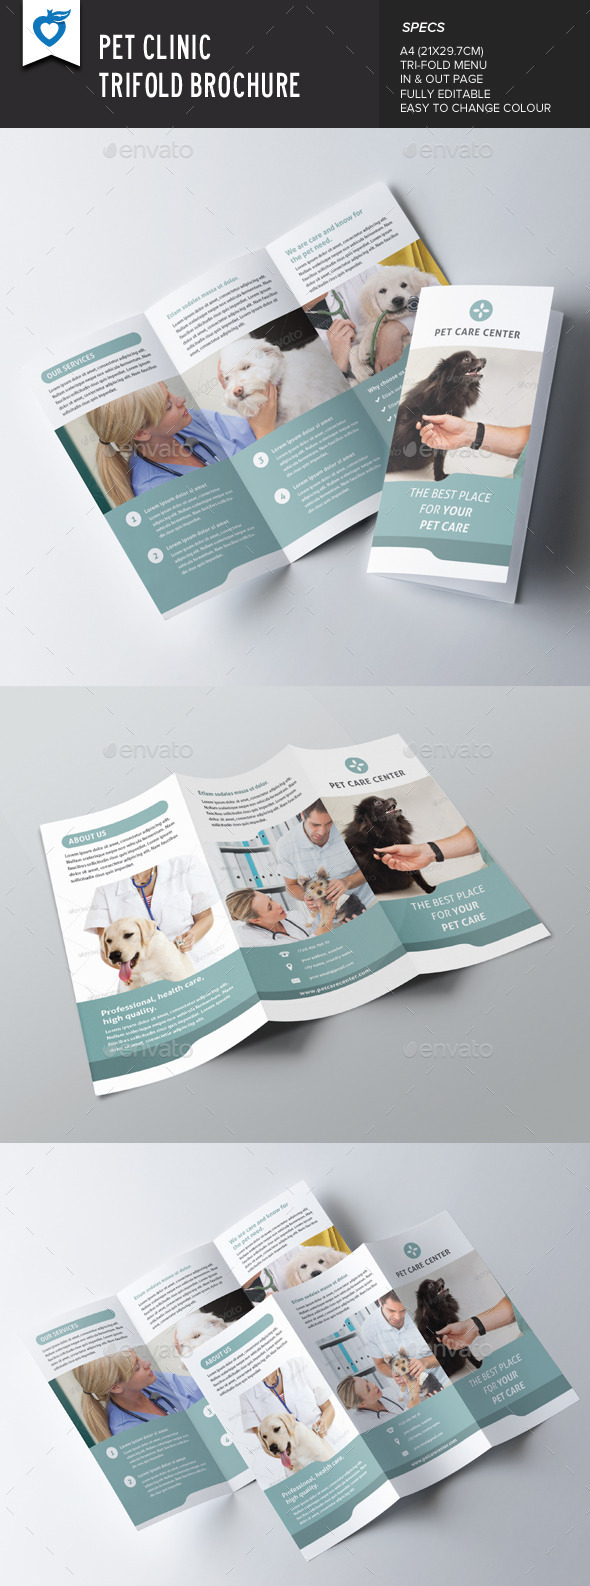 GraphicRiver Pet Clinic Trifold Brochure 9597013